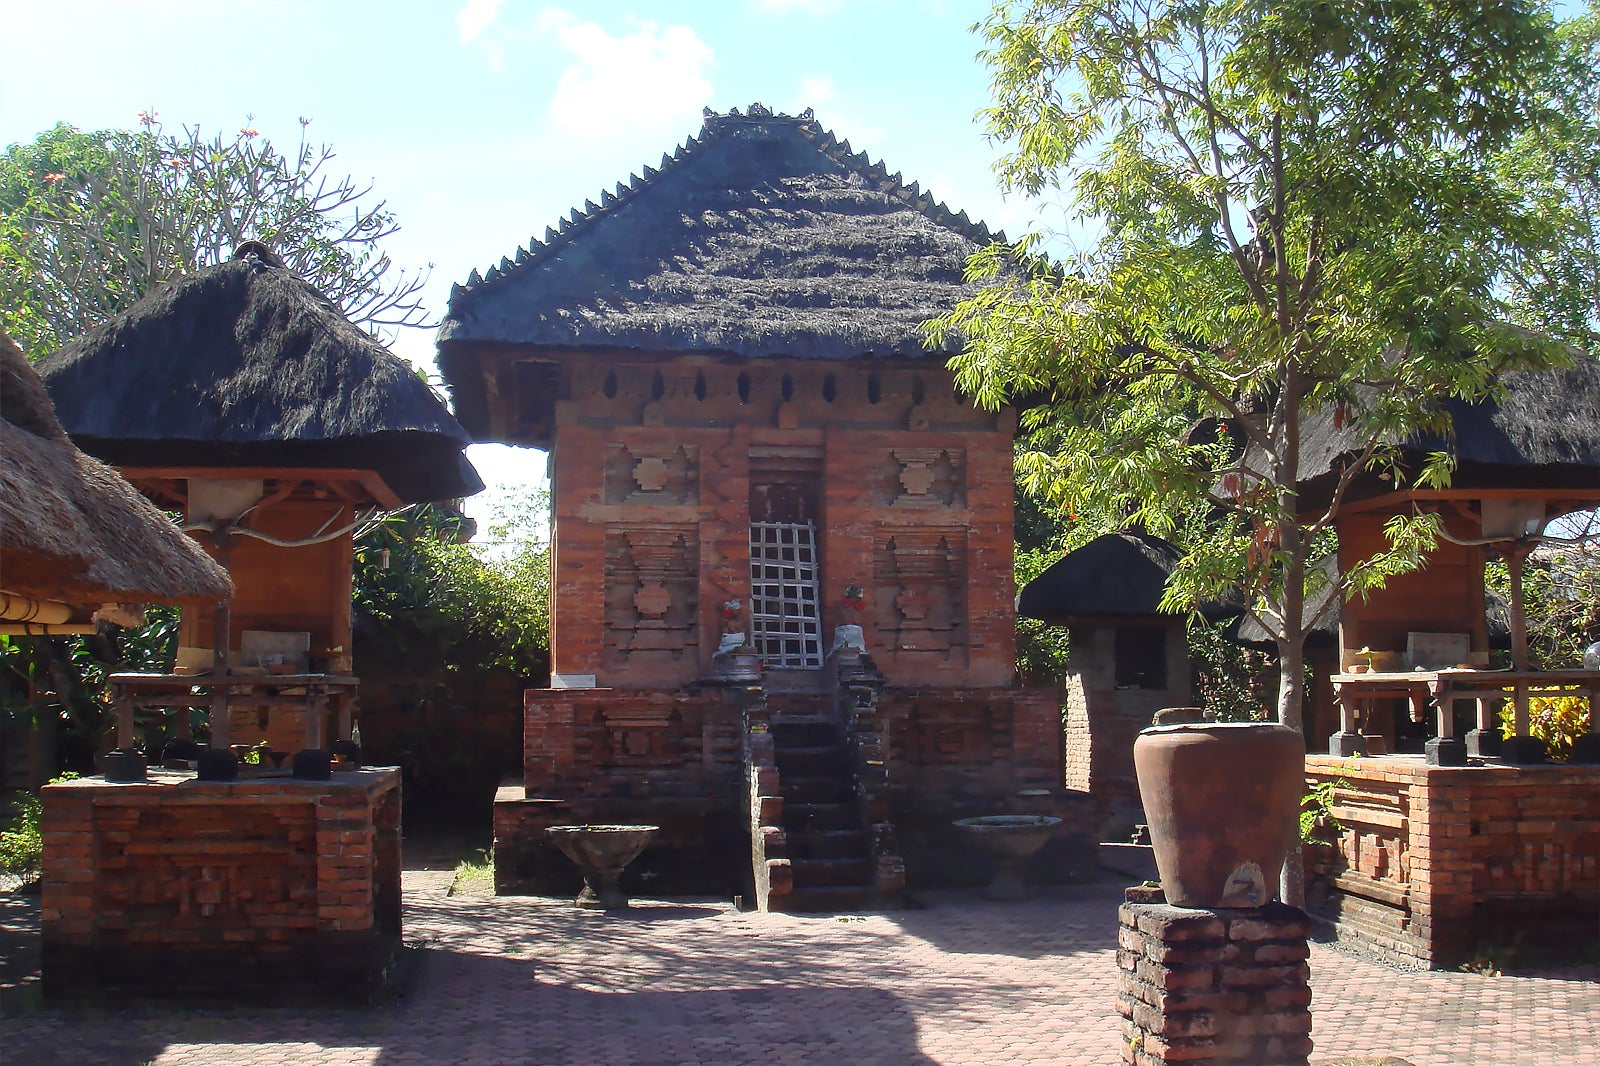 16 Best Things to Do in Denpasar - What is Denpasar Most Famous For?